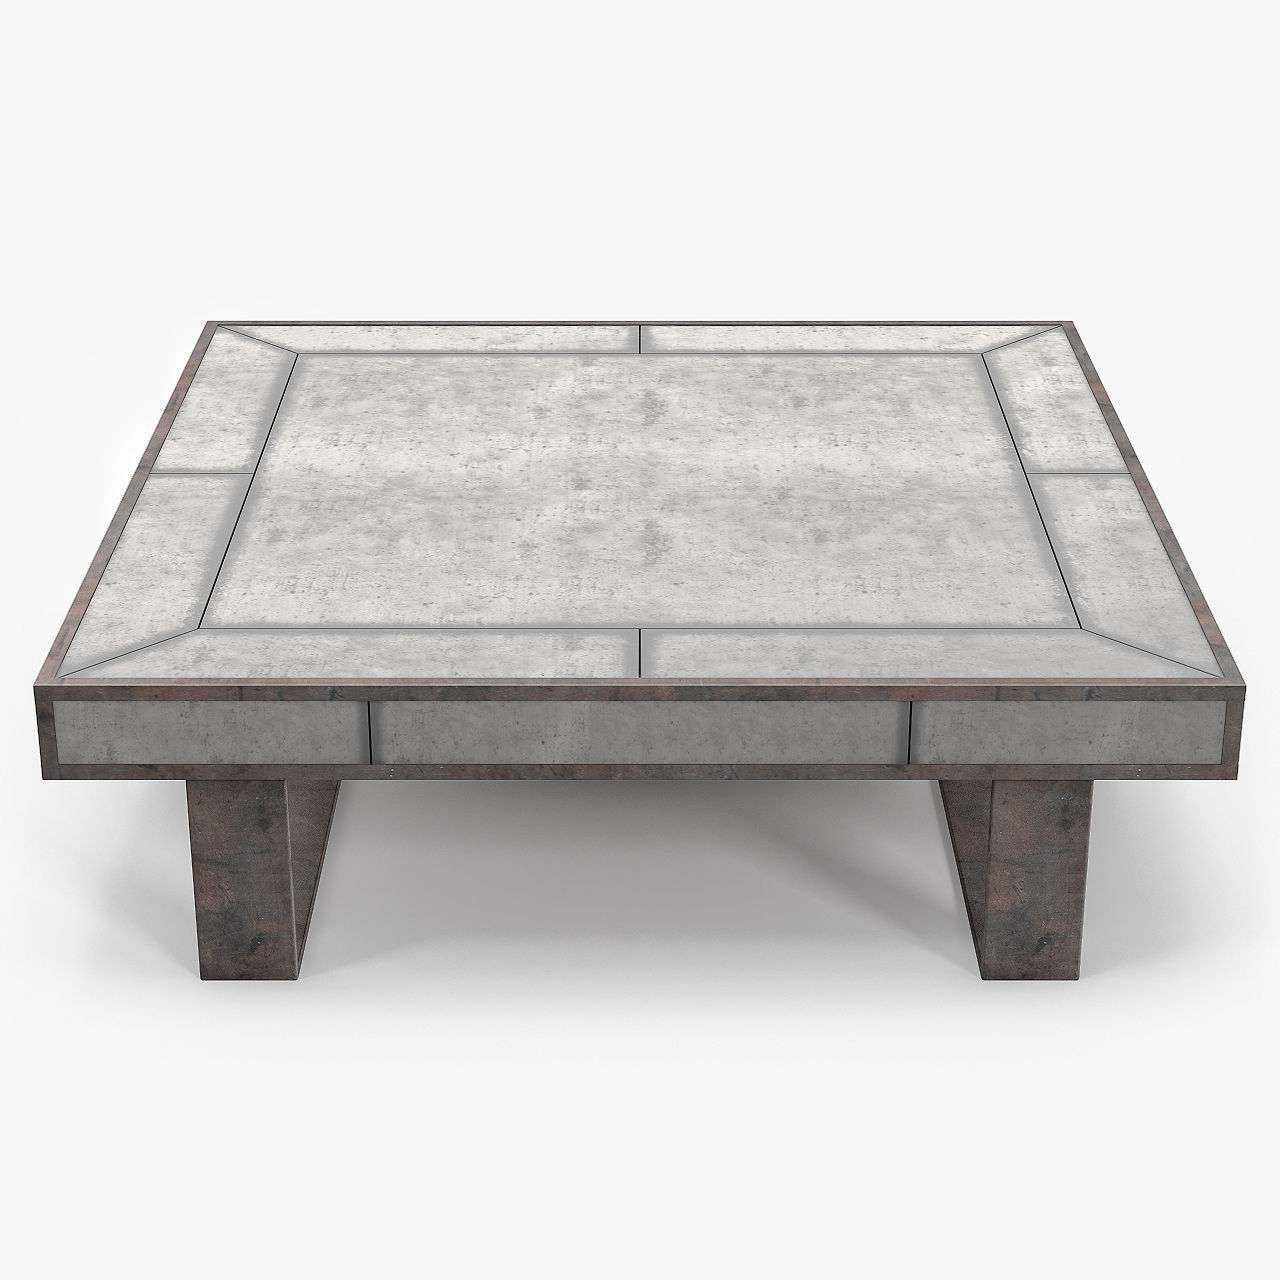 Louise Bradley Antique Mirror Coffee Table 3D Model Max Obj Fbx Mtl Pertaining To Recent Vintage Mirror Coffee Tables (View 11 of 20)